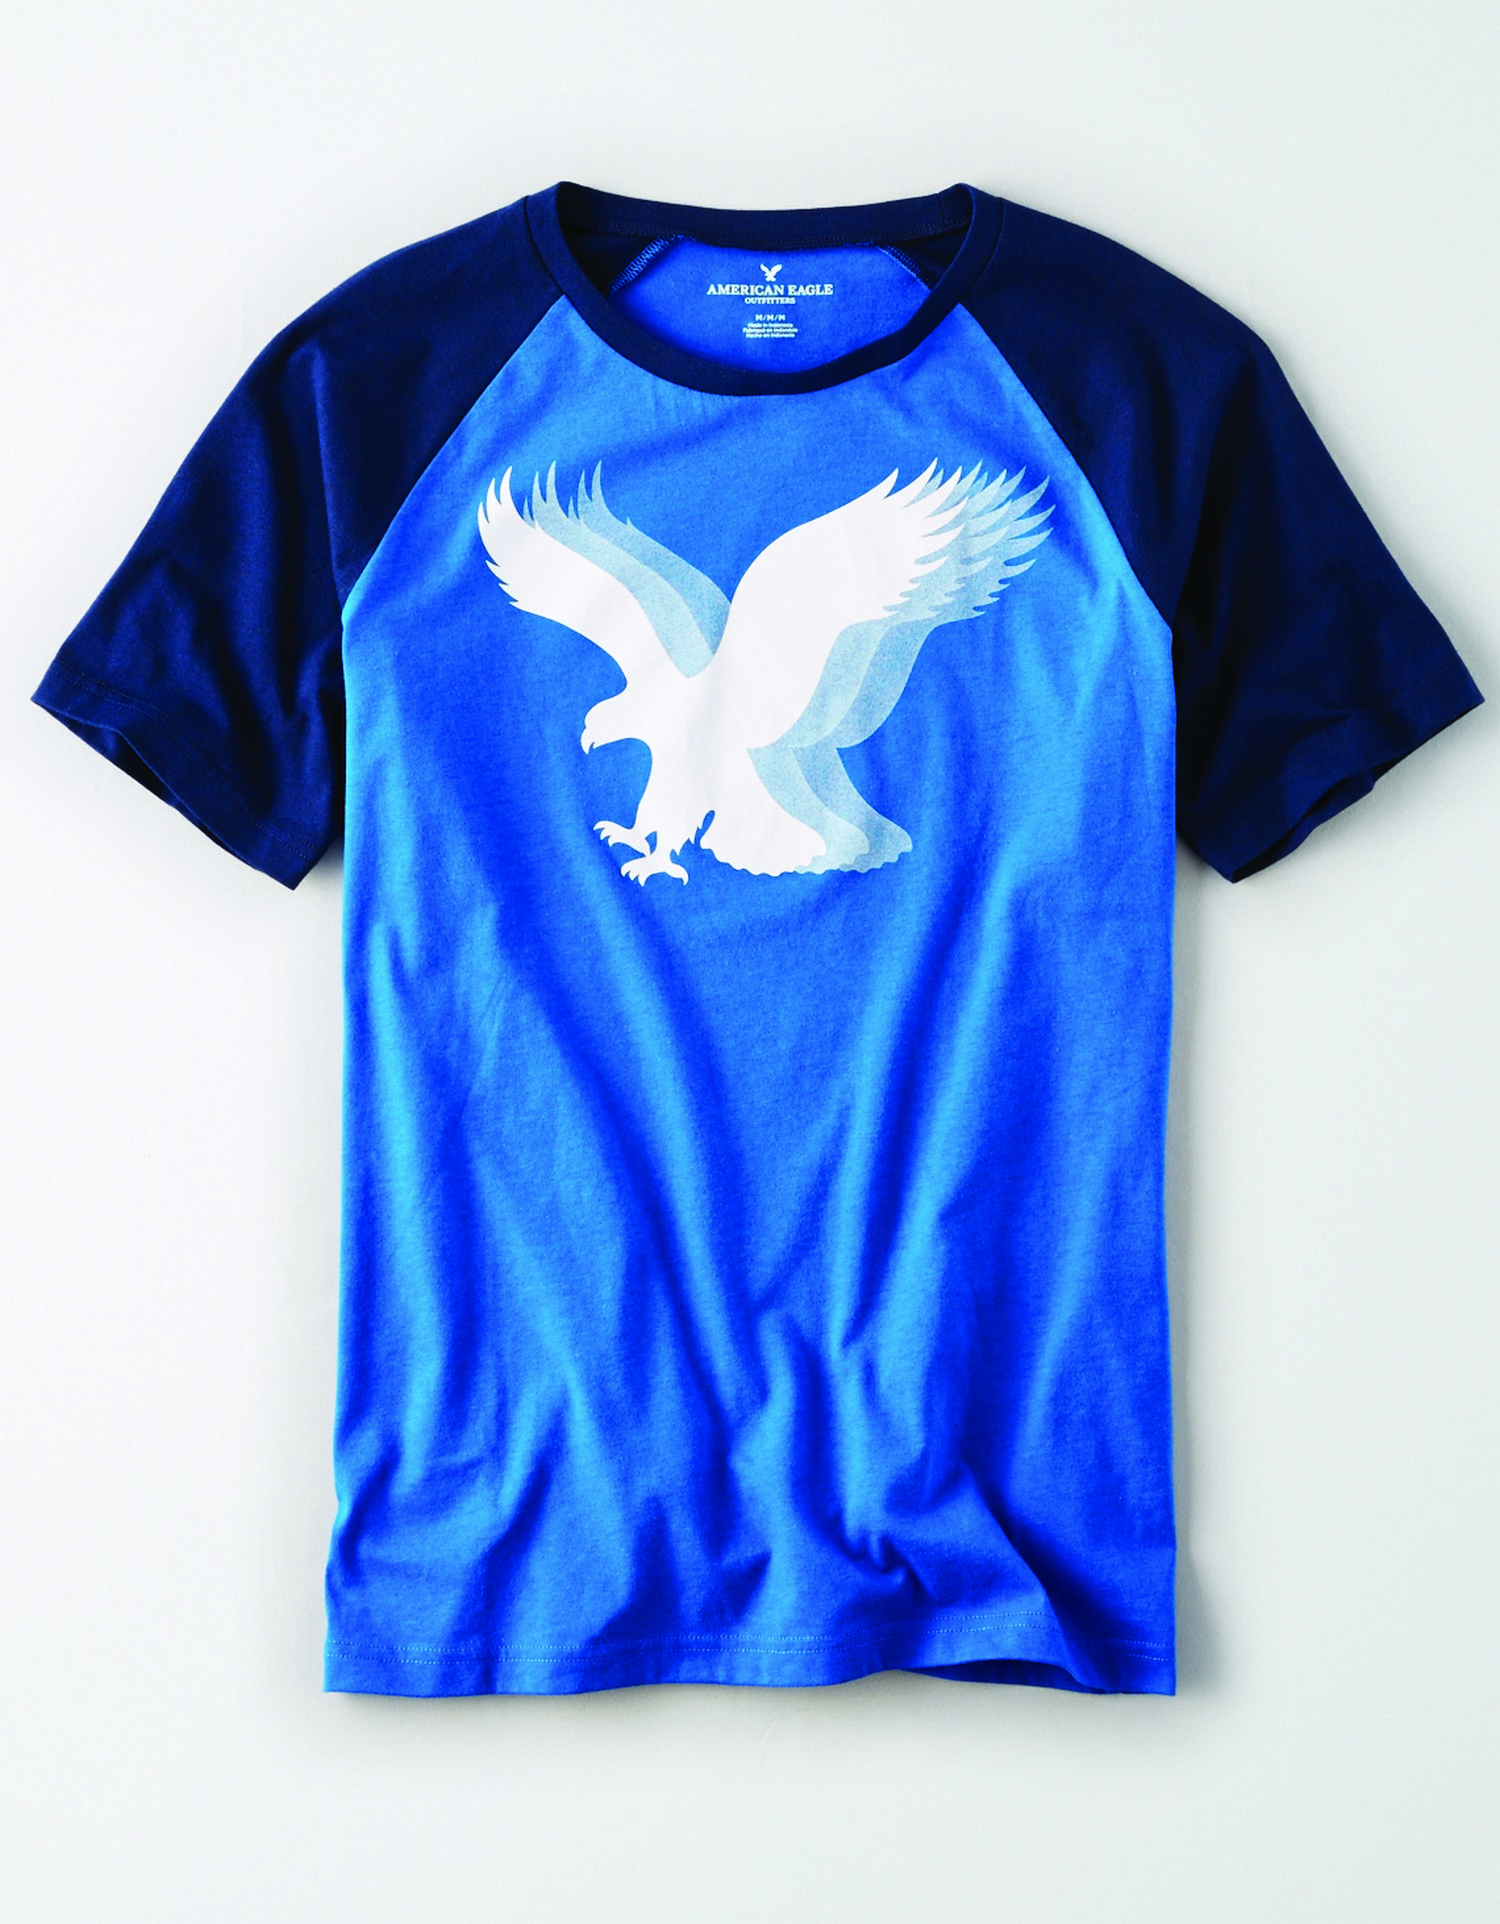 AE - M - Apparel - OPP SS RAGLAN TEE - Cobalt Blue Body - Navy Blue sleeves and collar - white and light blue layered eagle graphic on chest JP *Tracked